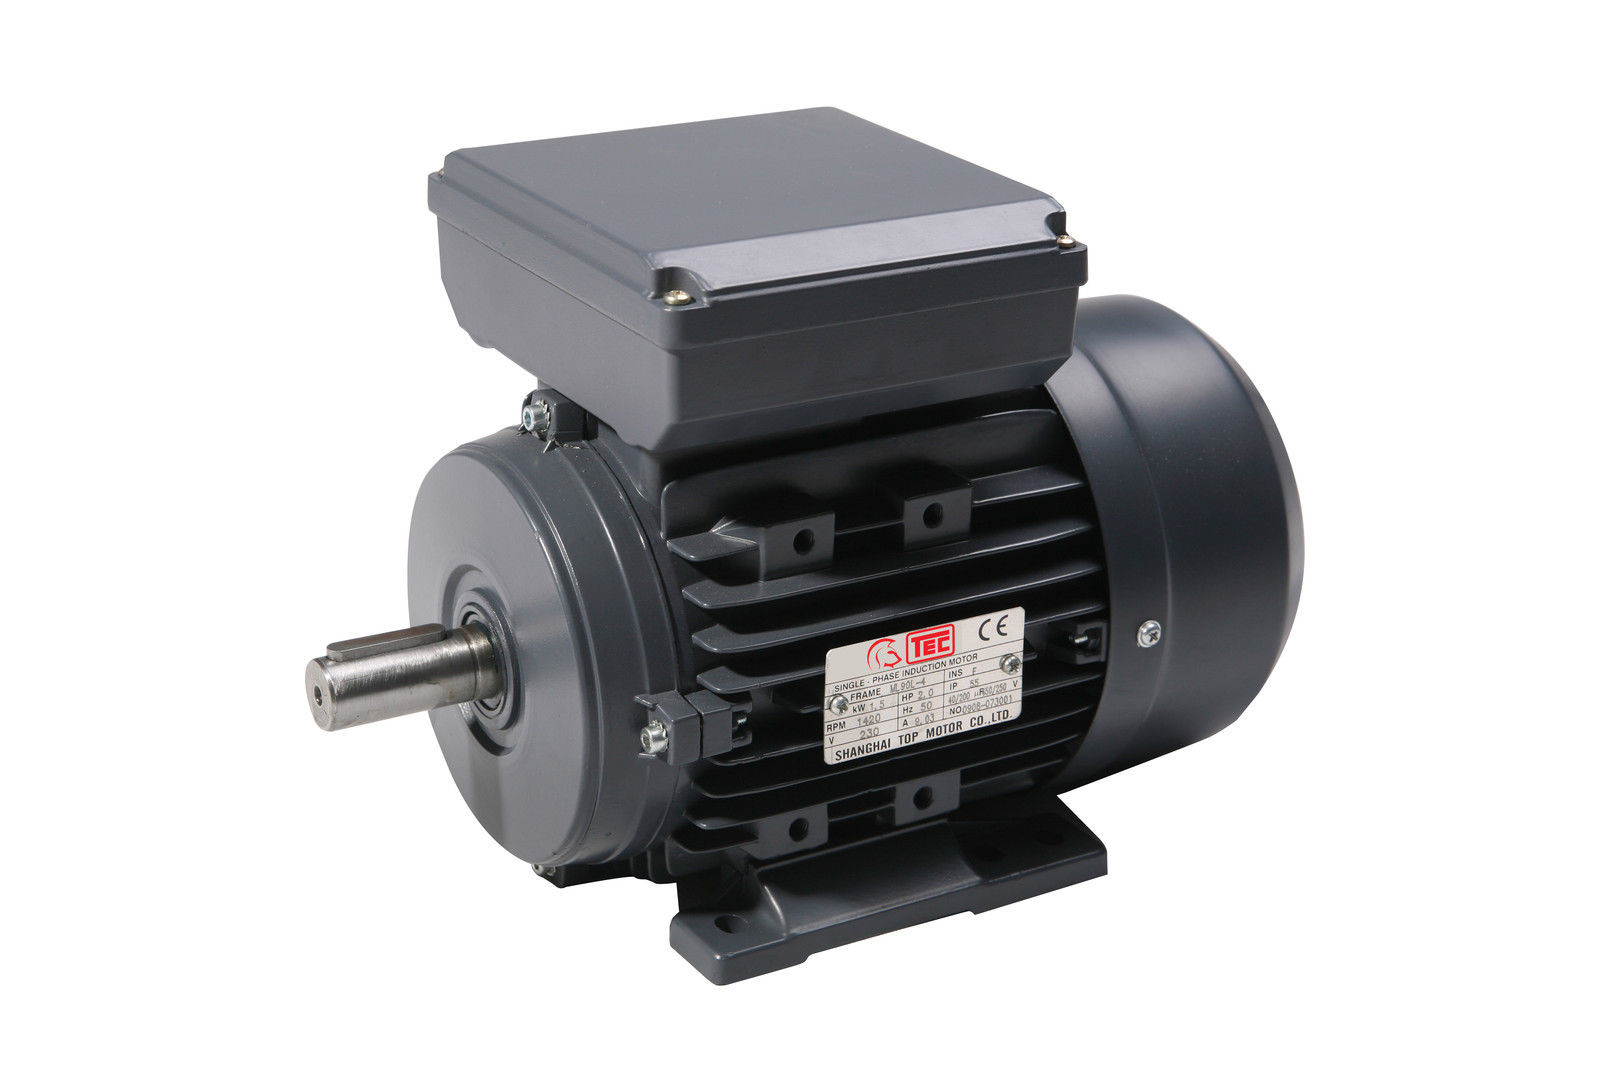 3 7 Kw 5 Hp Single Phase Electric Motor 240v 2800 Rpm 3